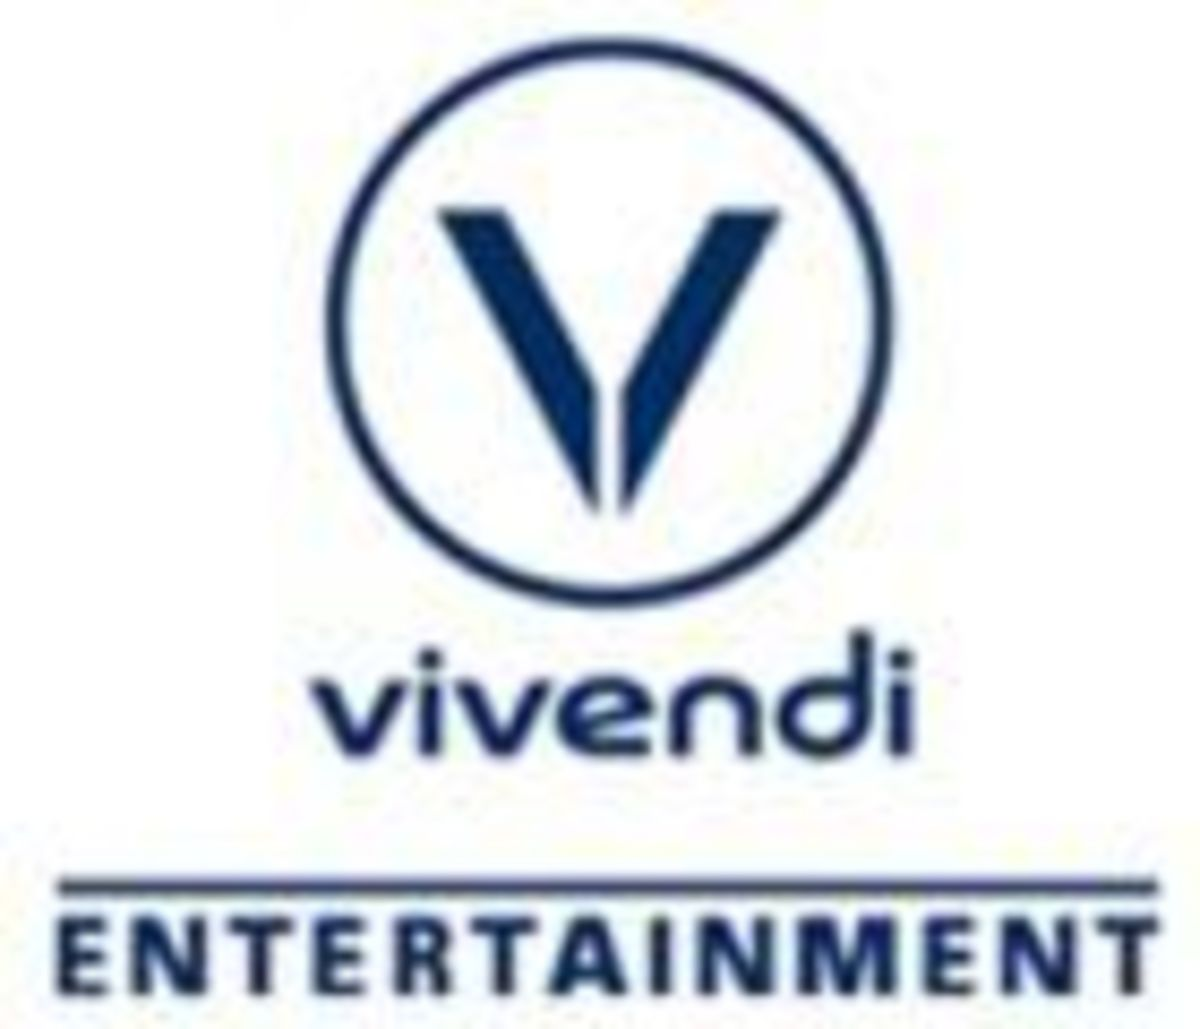 Vivendi Entertainment Logo